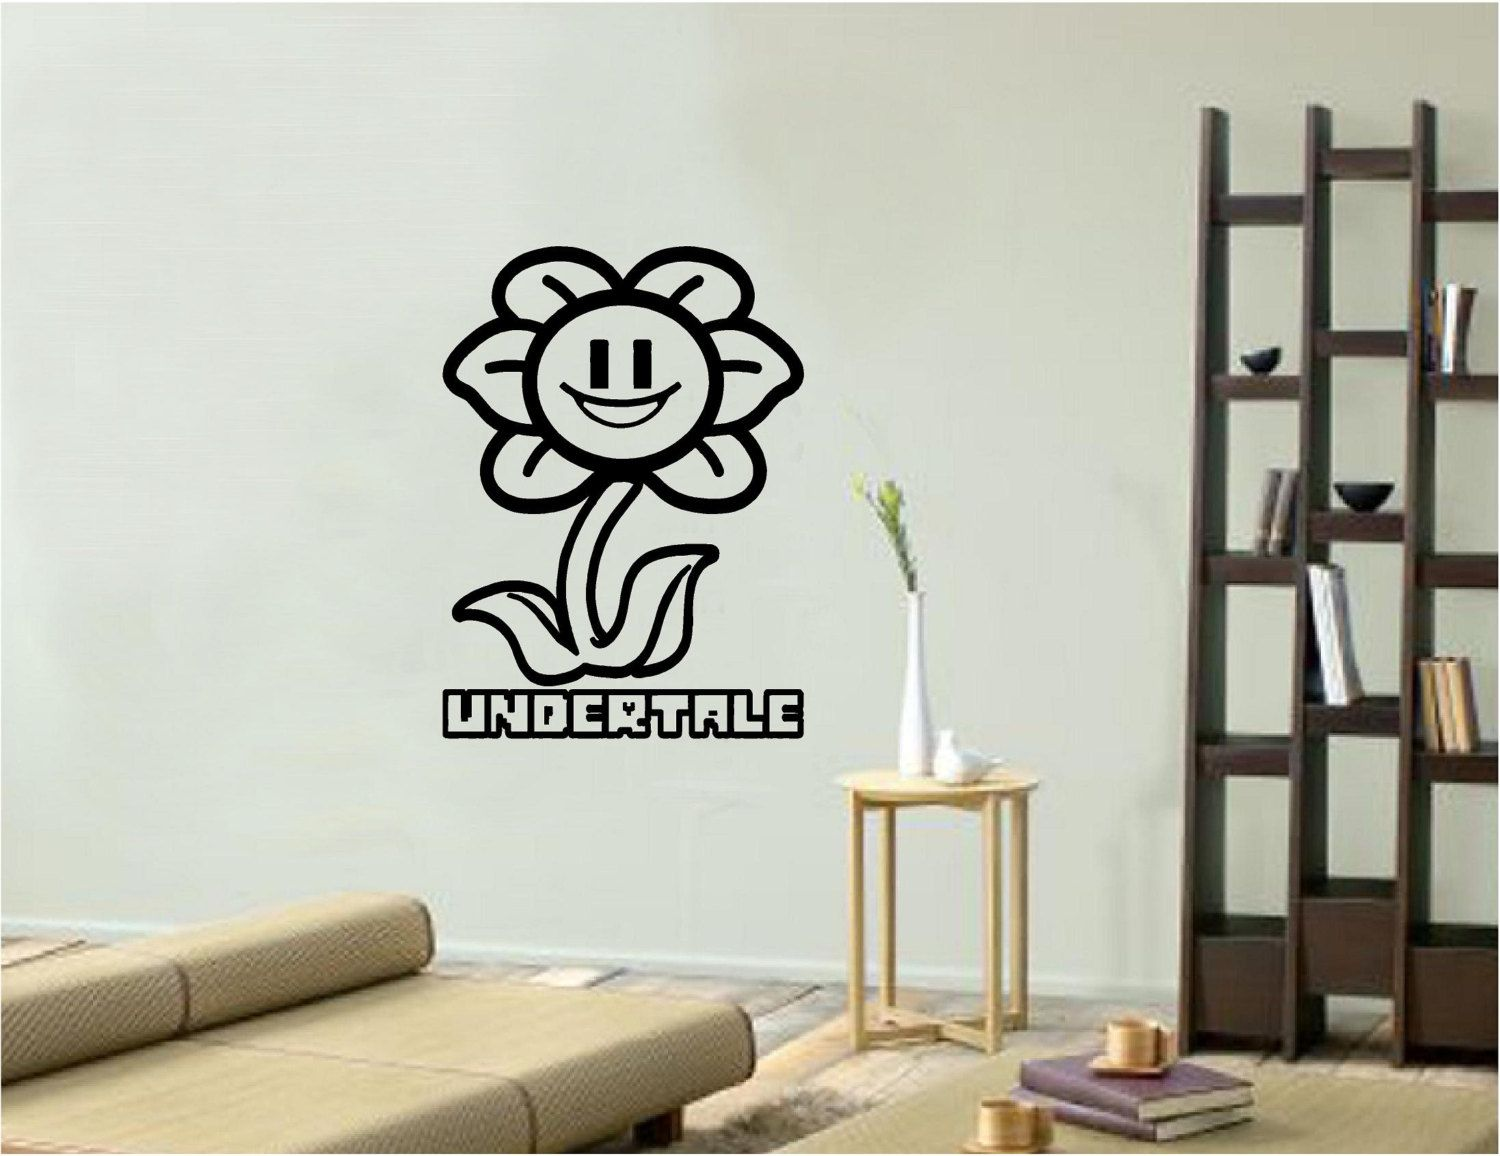 Vinyl Wall Decal Vinyl Wall Art Decal Sticker Flowey Undertale Vinyl